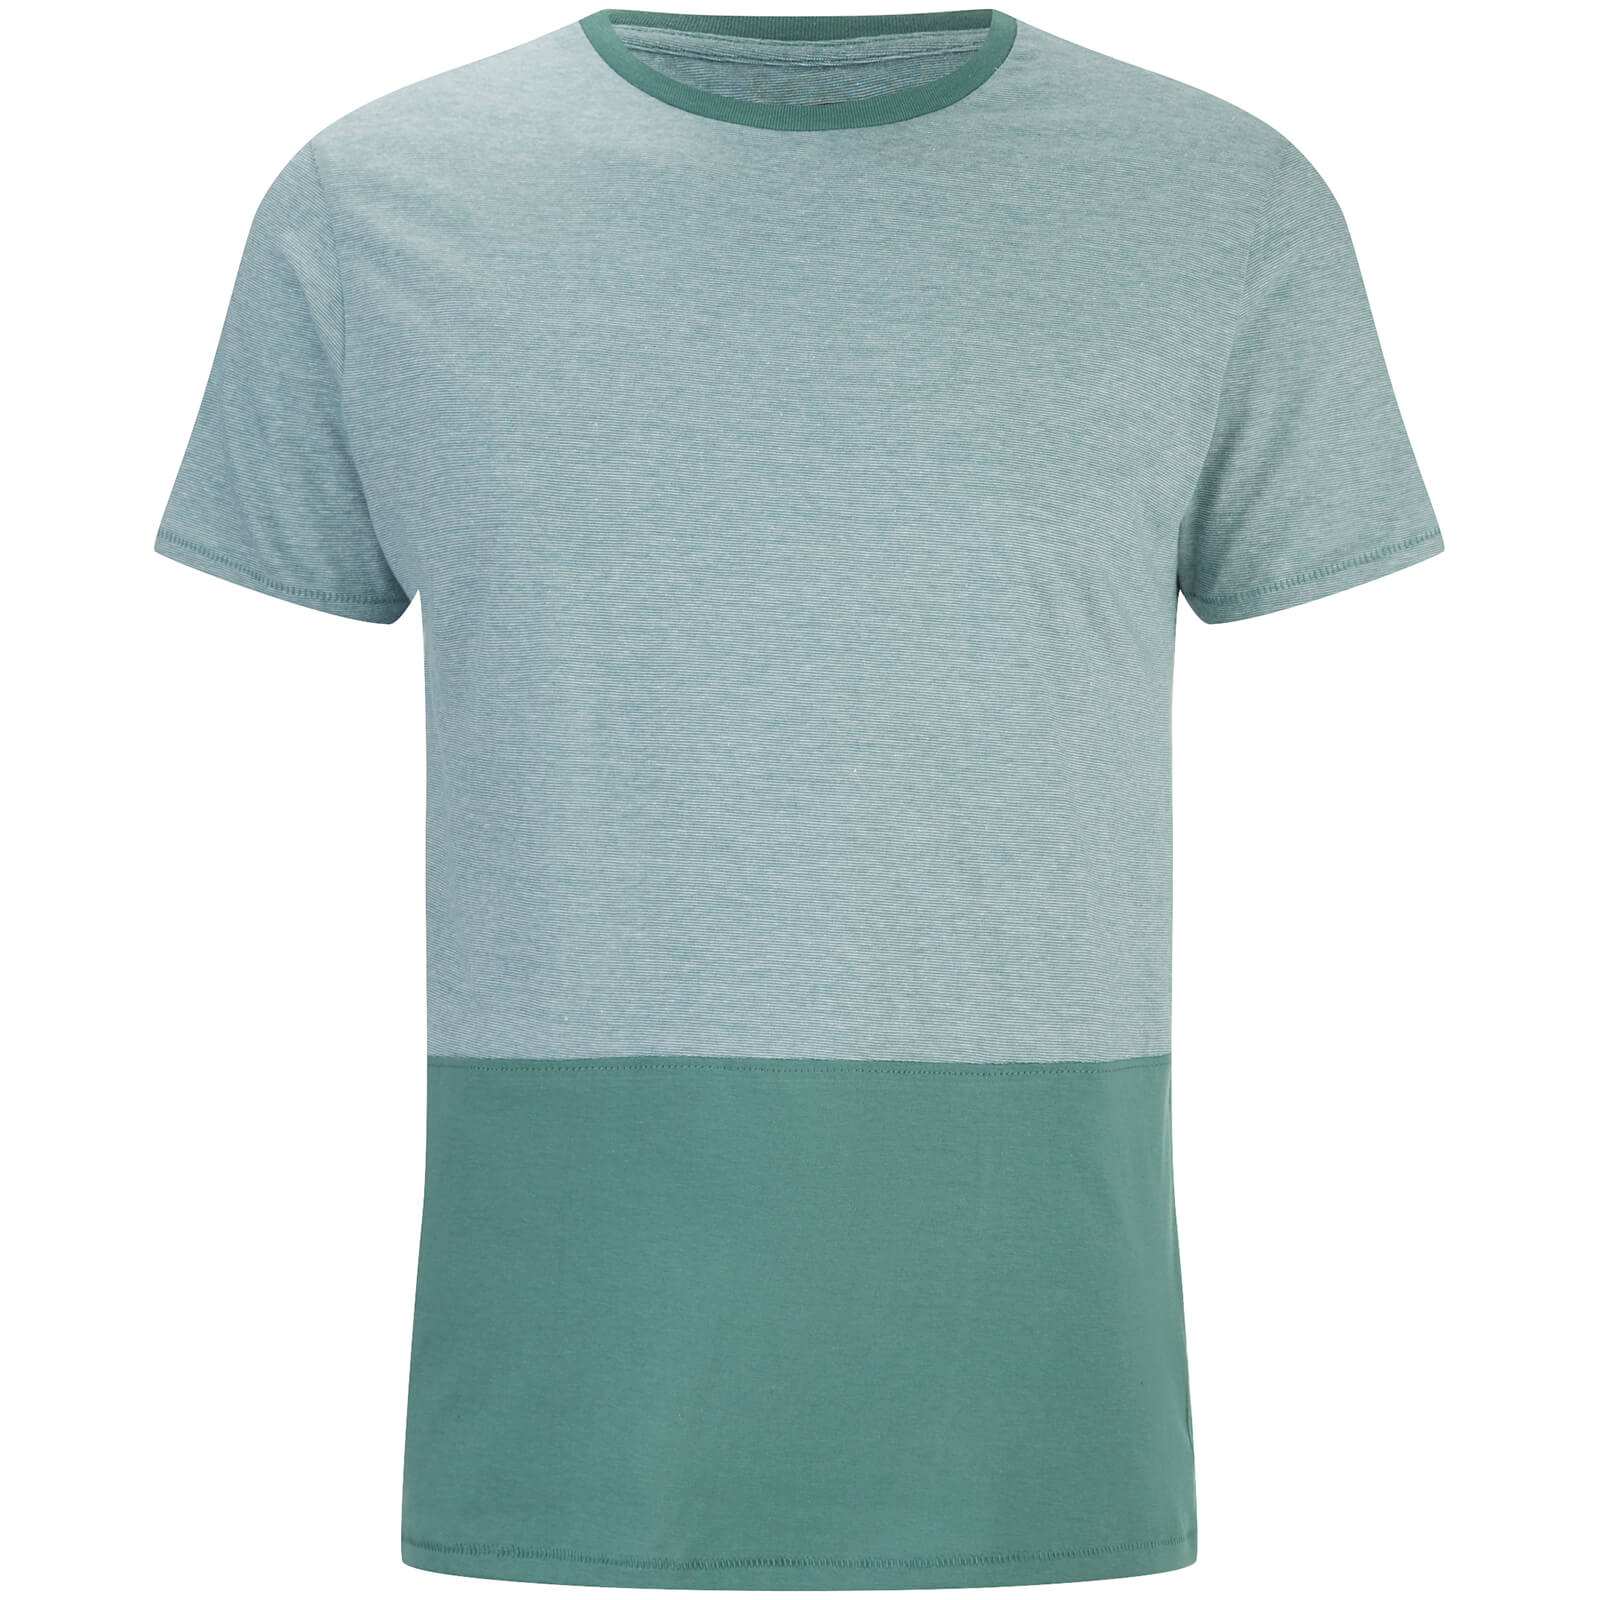 T-Shirt Homme Corning Panel Threadbare -Vert d